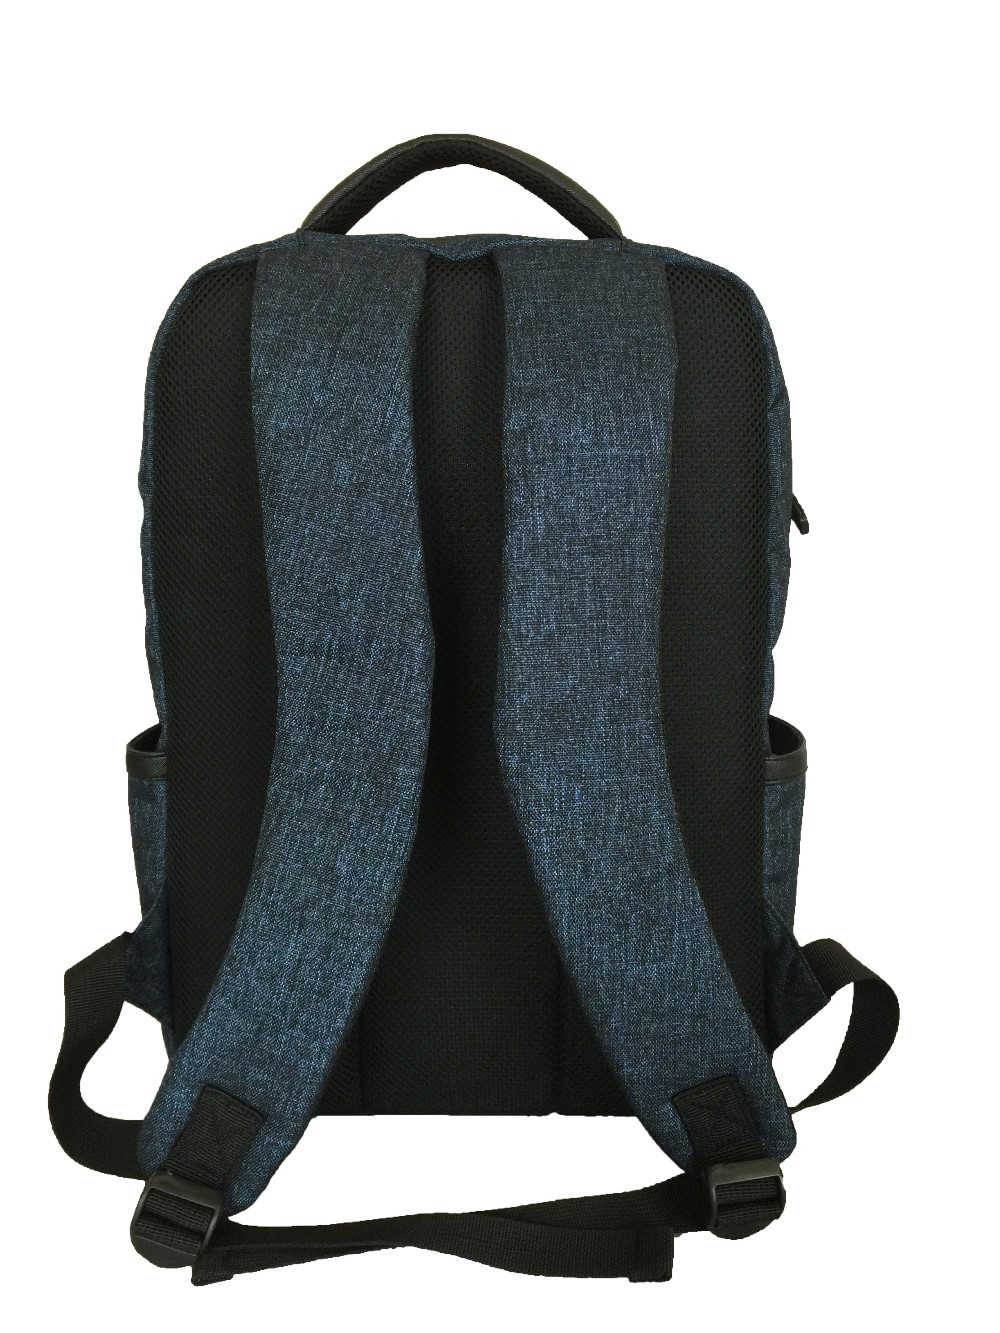 High quality shinning fabric durable daily backpack for 14 inch laptop